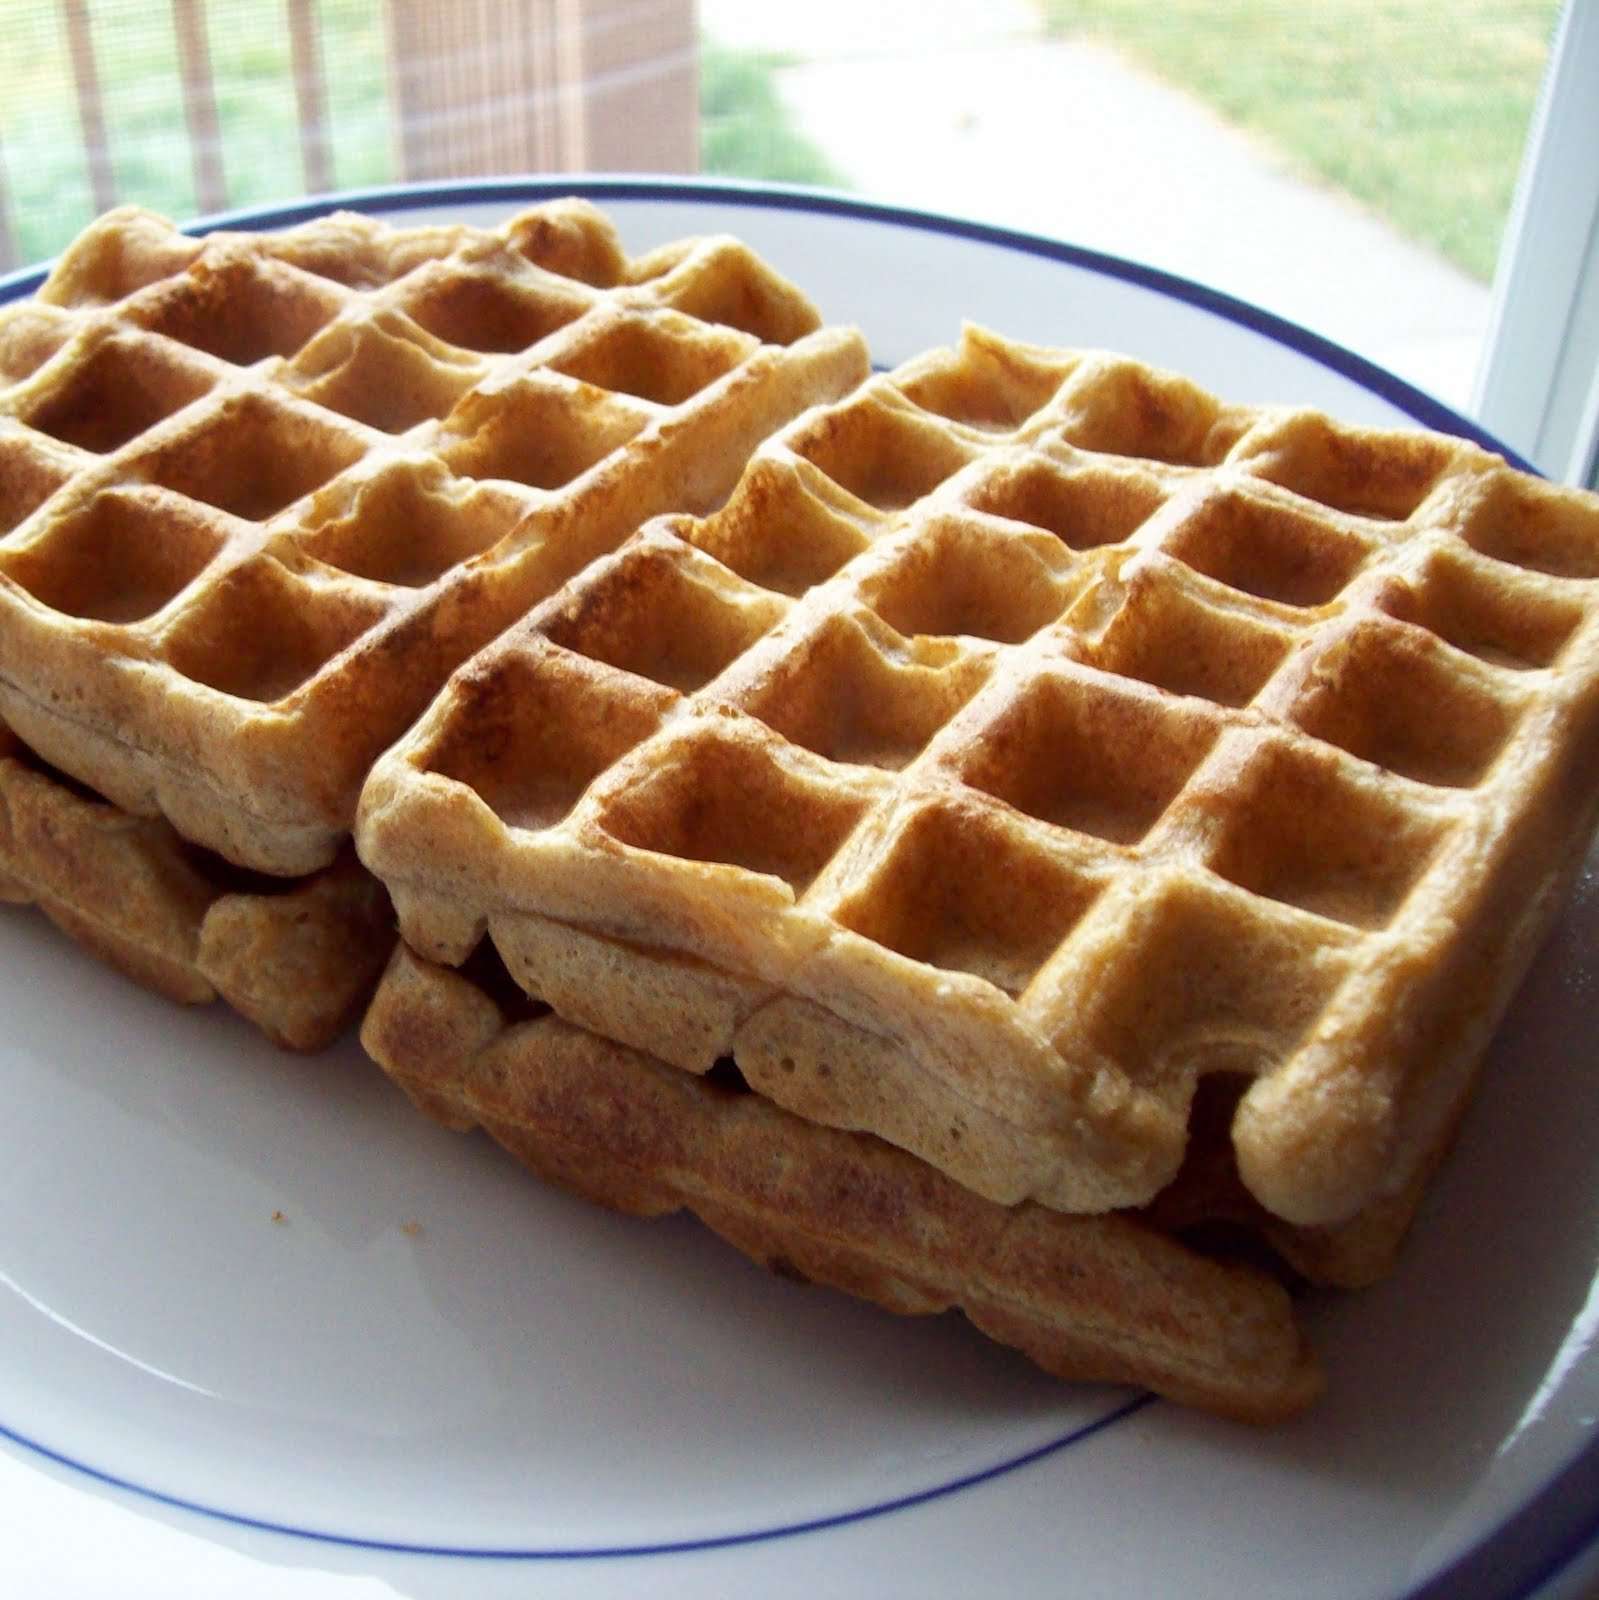 Whole+Wheat+Waffles+Cooked.jpg